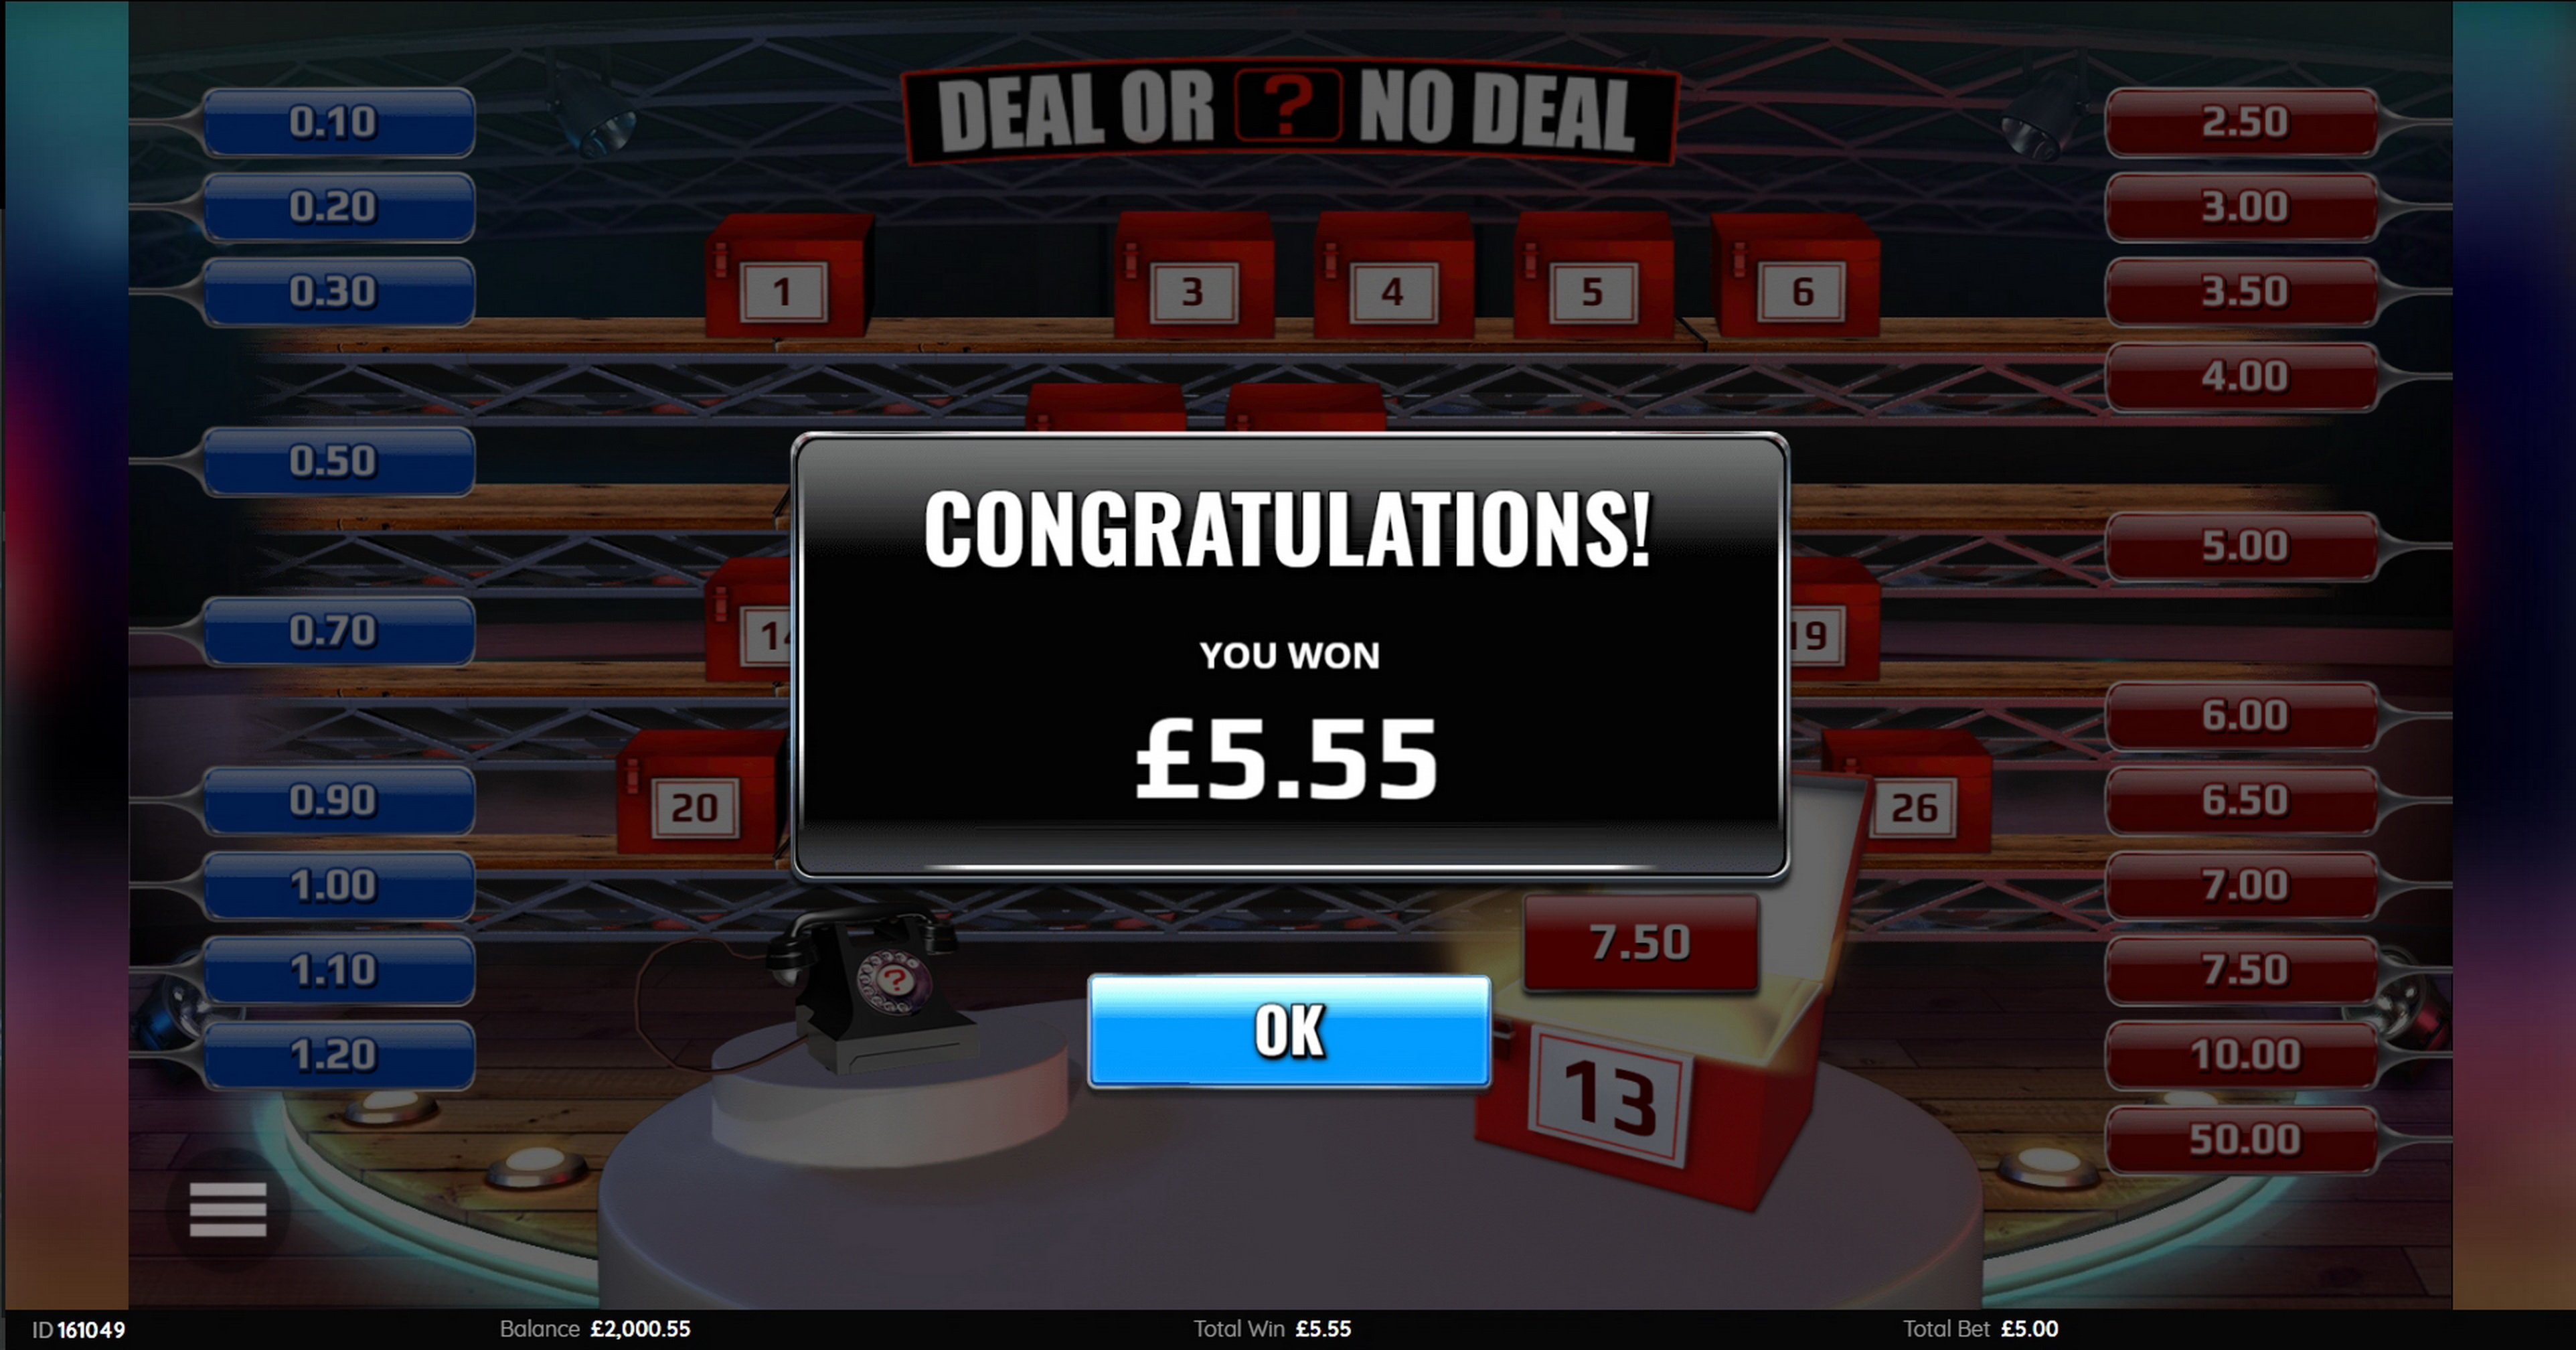 Win Money in Deal Or No Deal (Endemol Games) Free Slot Game by Endemol Games